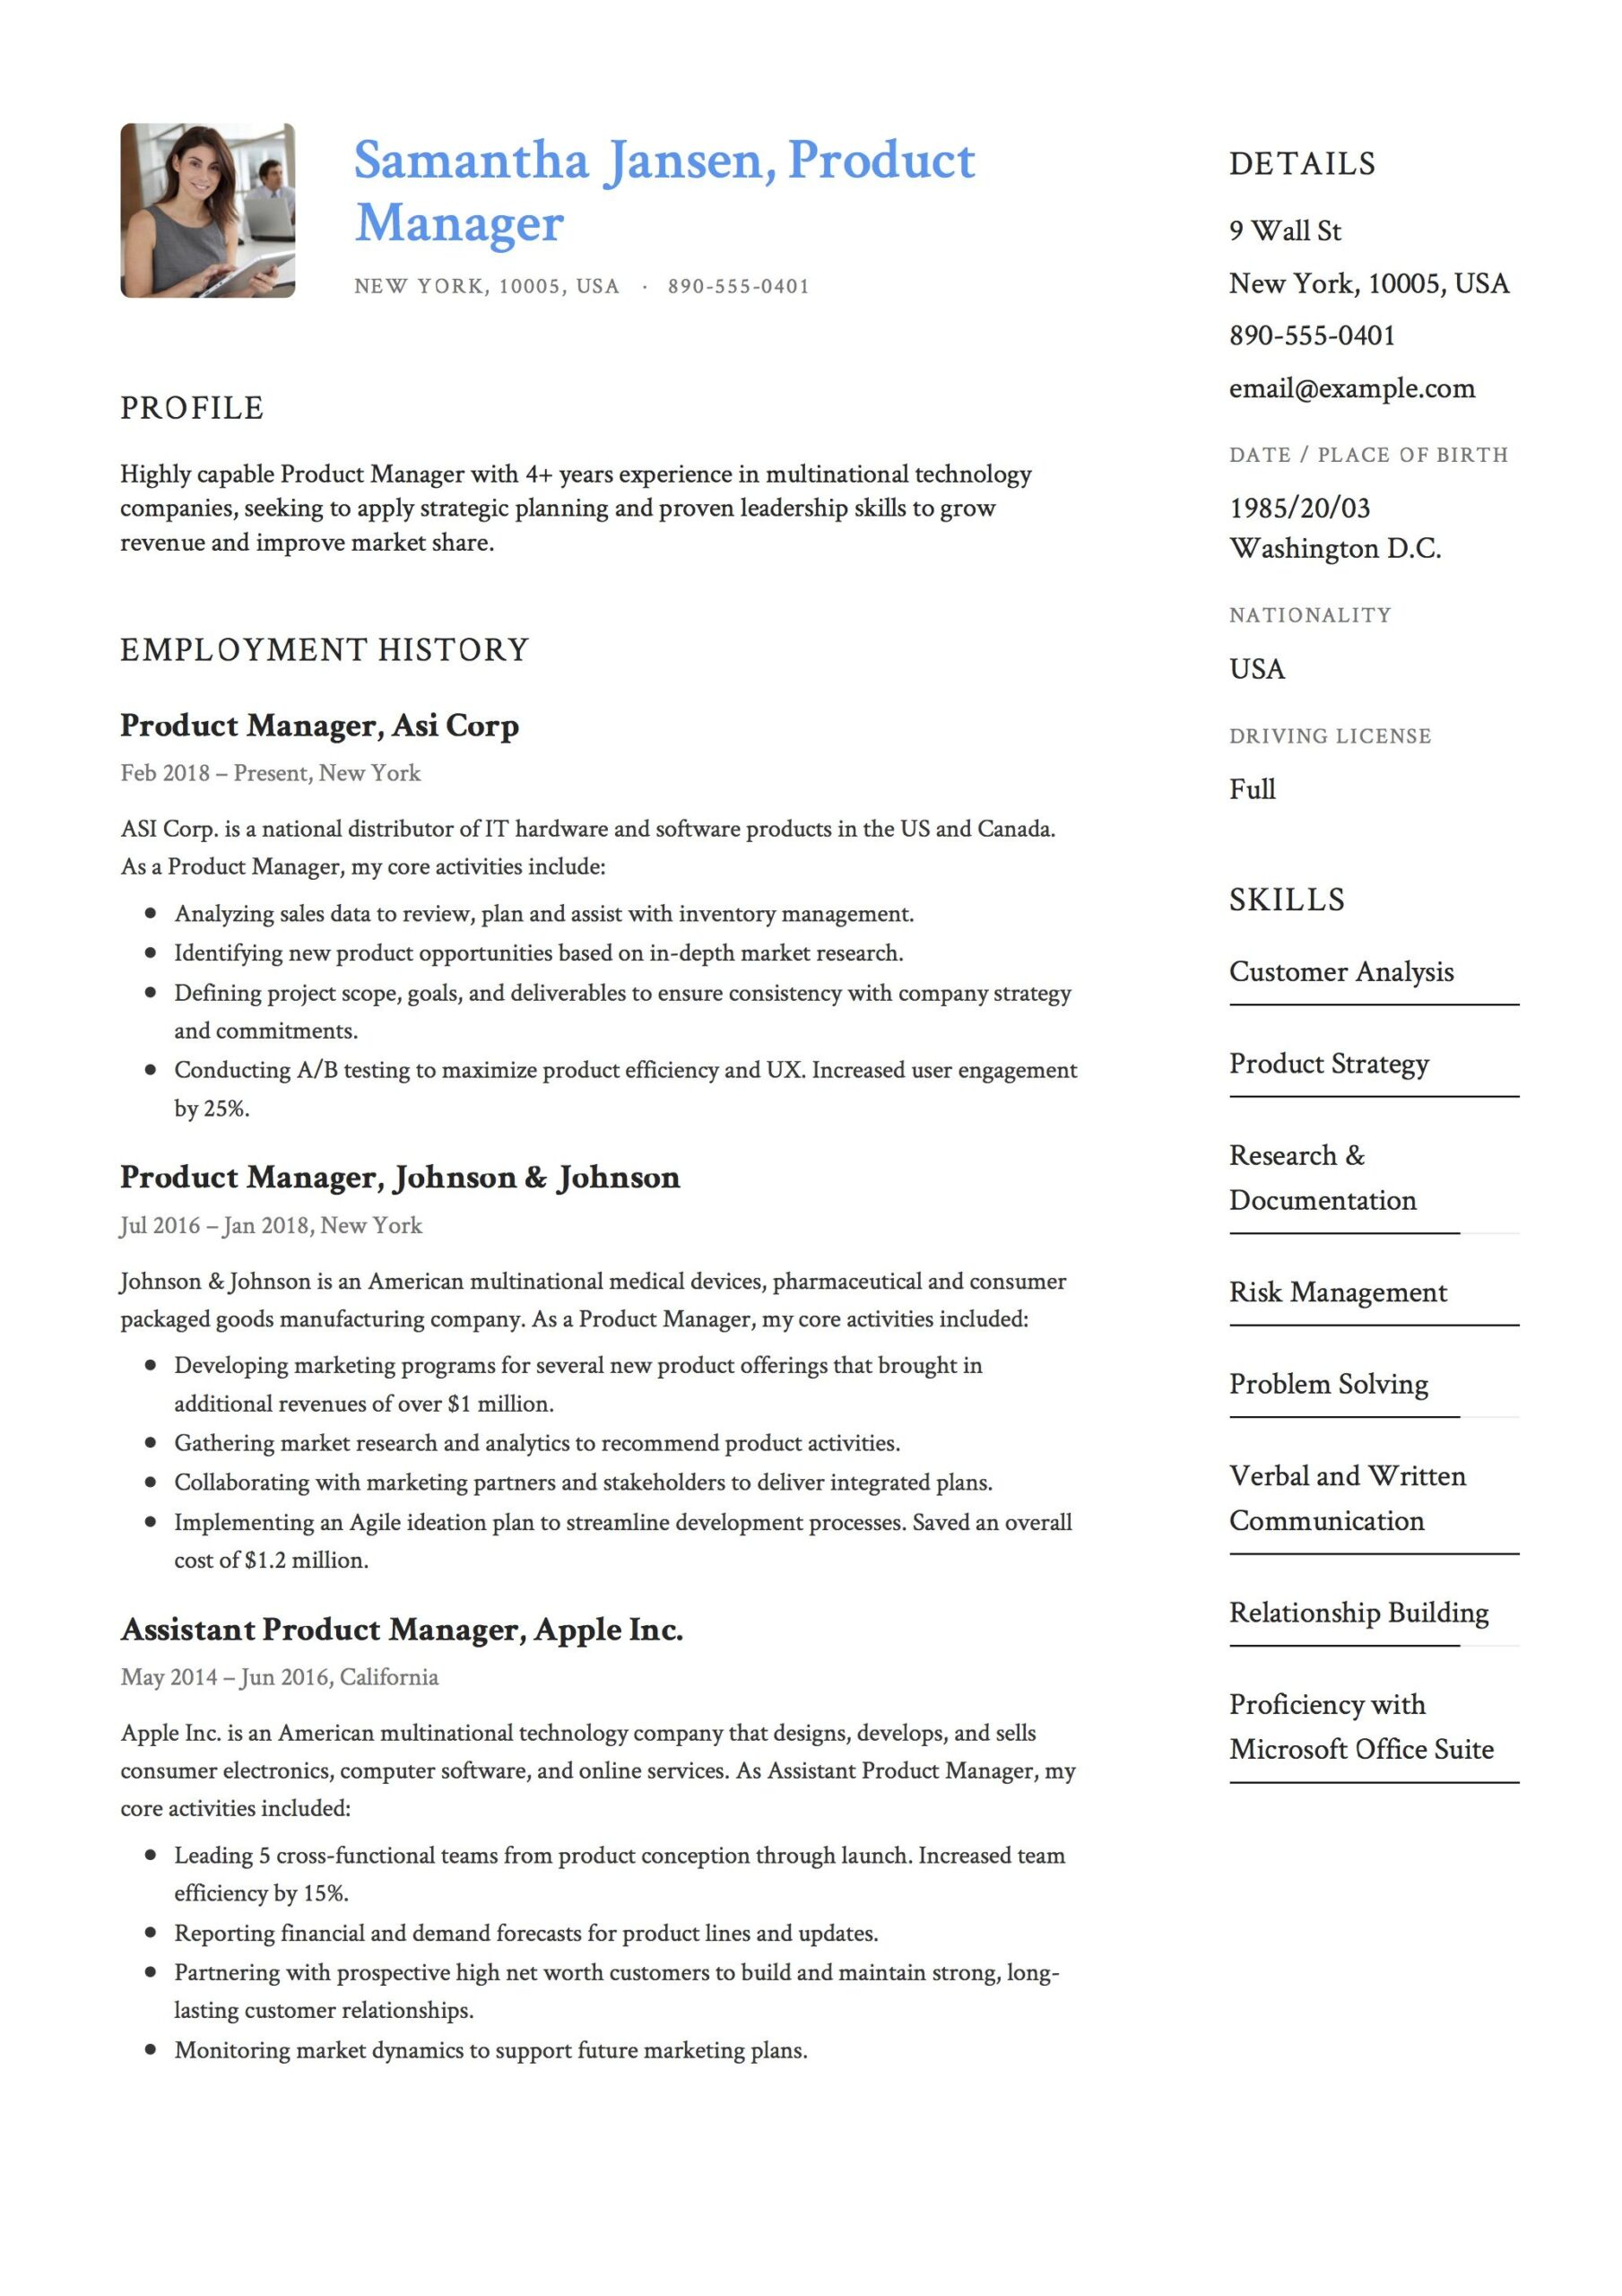 product manager resume sample template example cv formal design examples guide checker Resume Product Manager Resume Examples